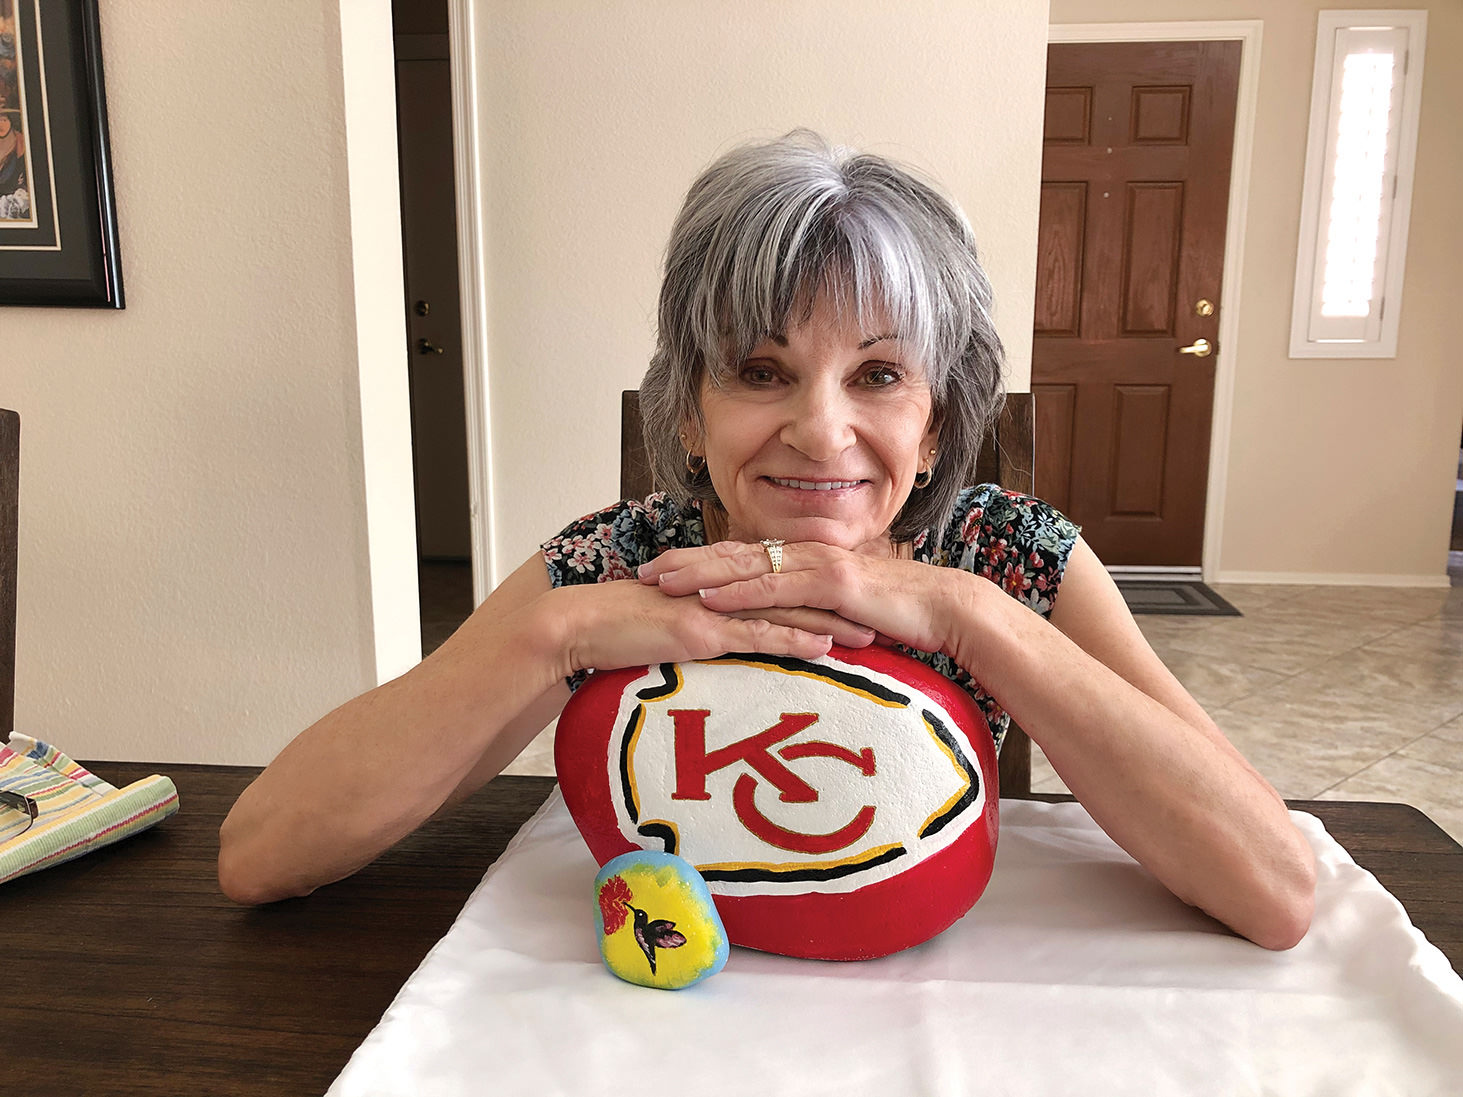 Sun Lakes resident Diane Haver has turned a pandemic hobby into a flourishing part-time job, painting logos of professional and college sports teams on stones from her backyard. Here she is shown with two of her specialties: a hummingbird and a logo of her favorite team, the Kansas City Chiefs. (Photo by Gary Vacin)